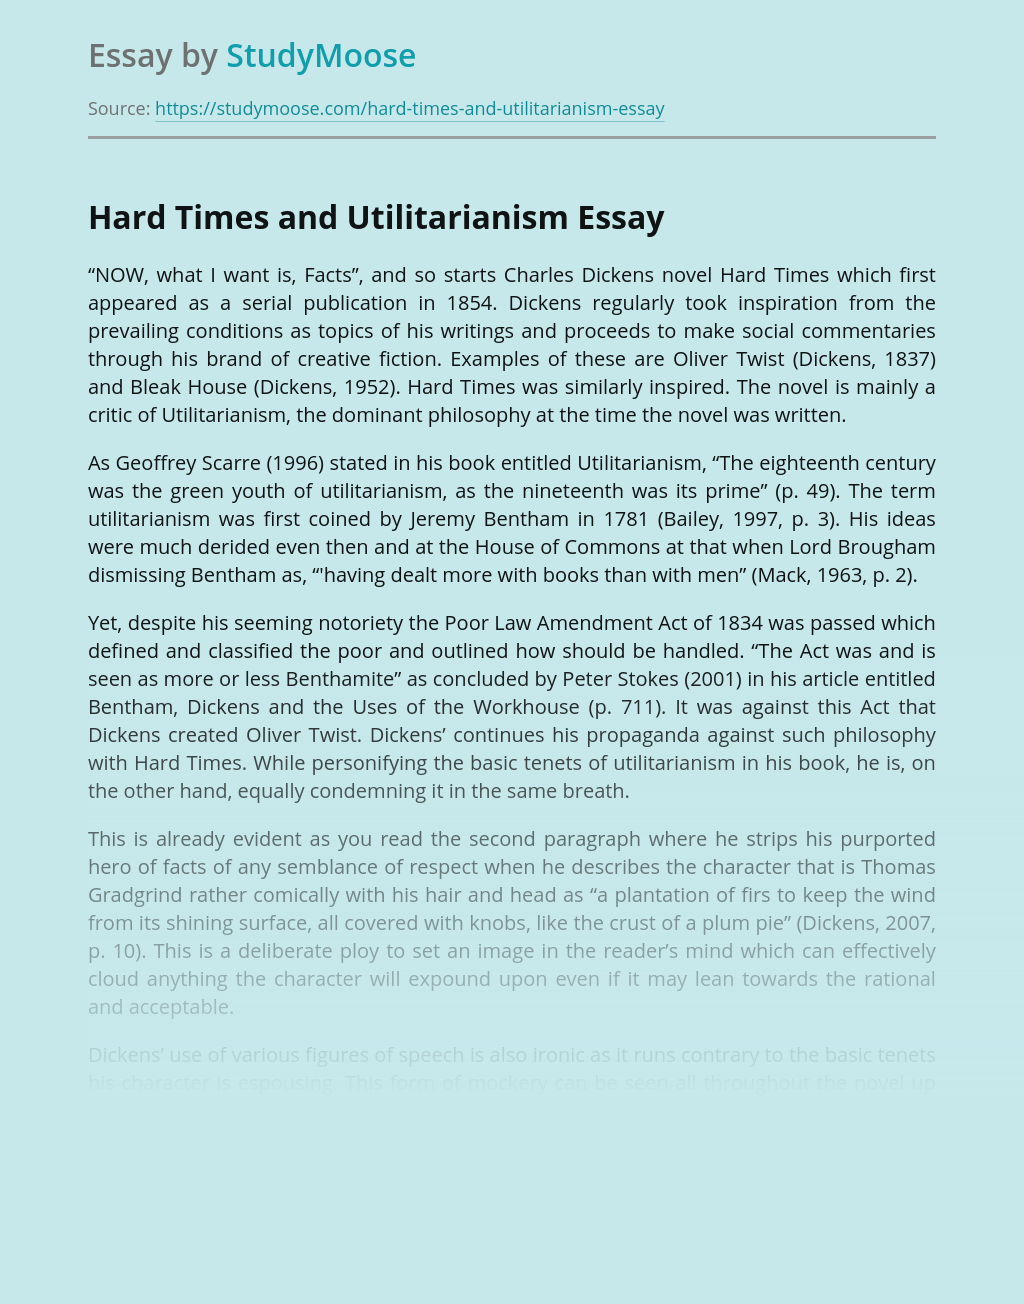 Hard Times and Utilitarianism